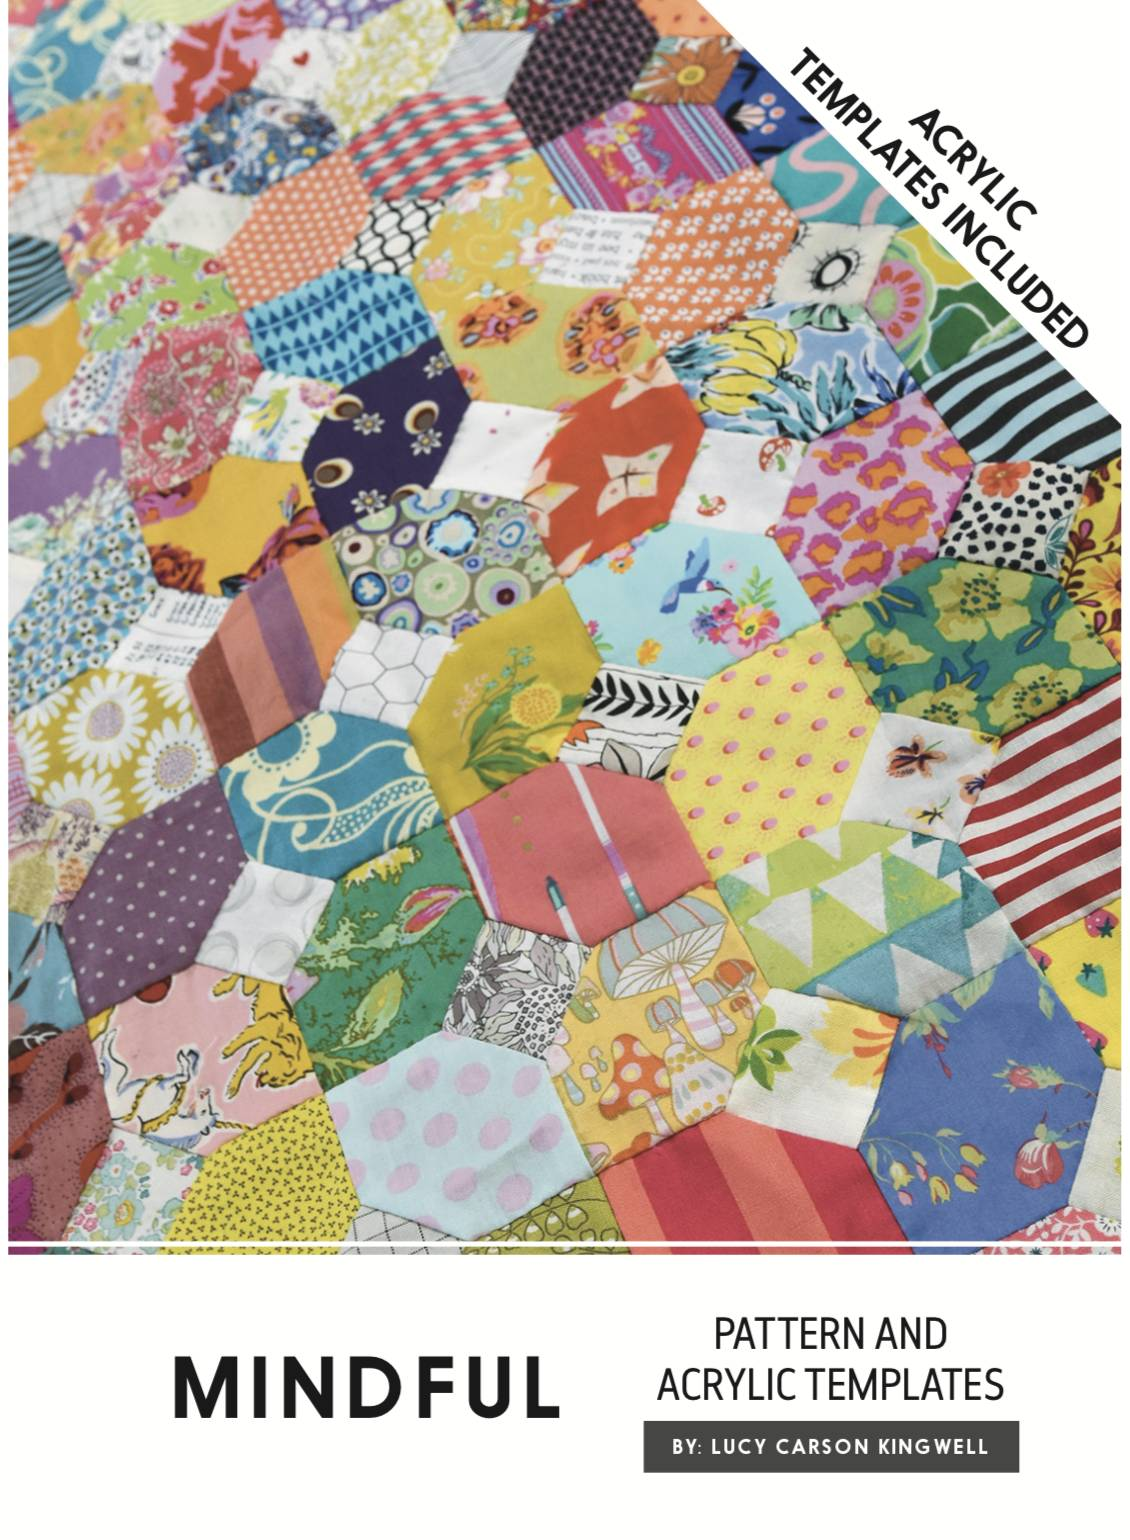 How To Make Acrylic Templates For Quilting